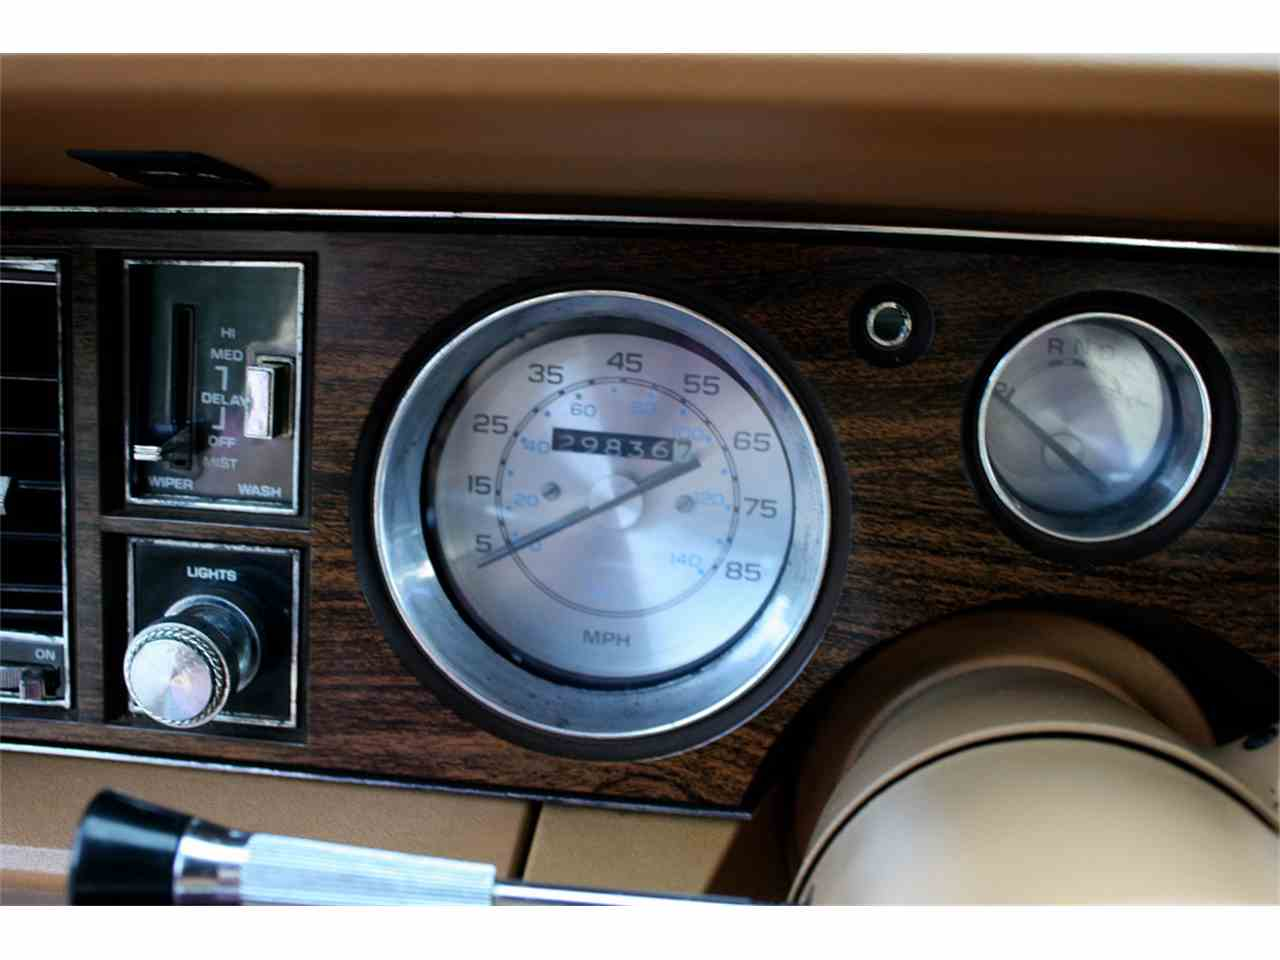 Large Picture of 1978 Buick Electra located in Florida - $13,500.00 - J5J3